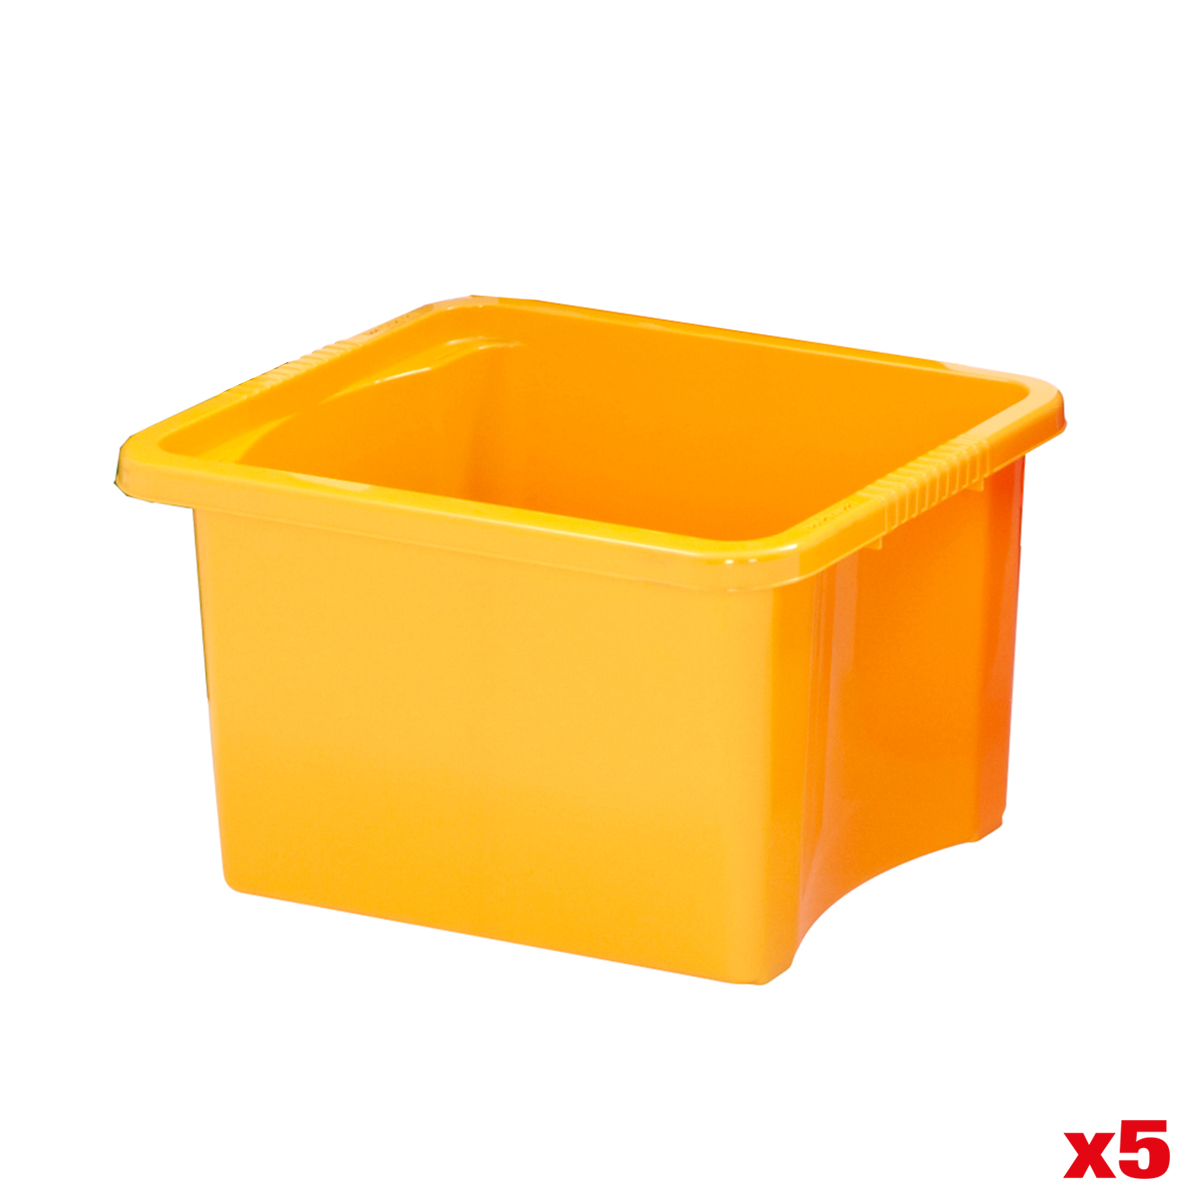 Find great deals on eBay for colored storage boxes. Shop with confidence.